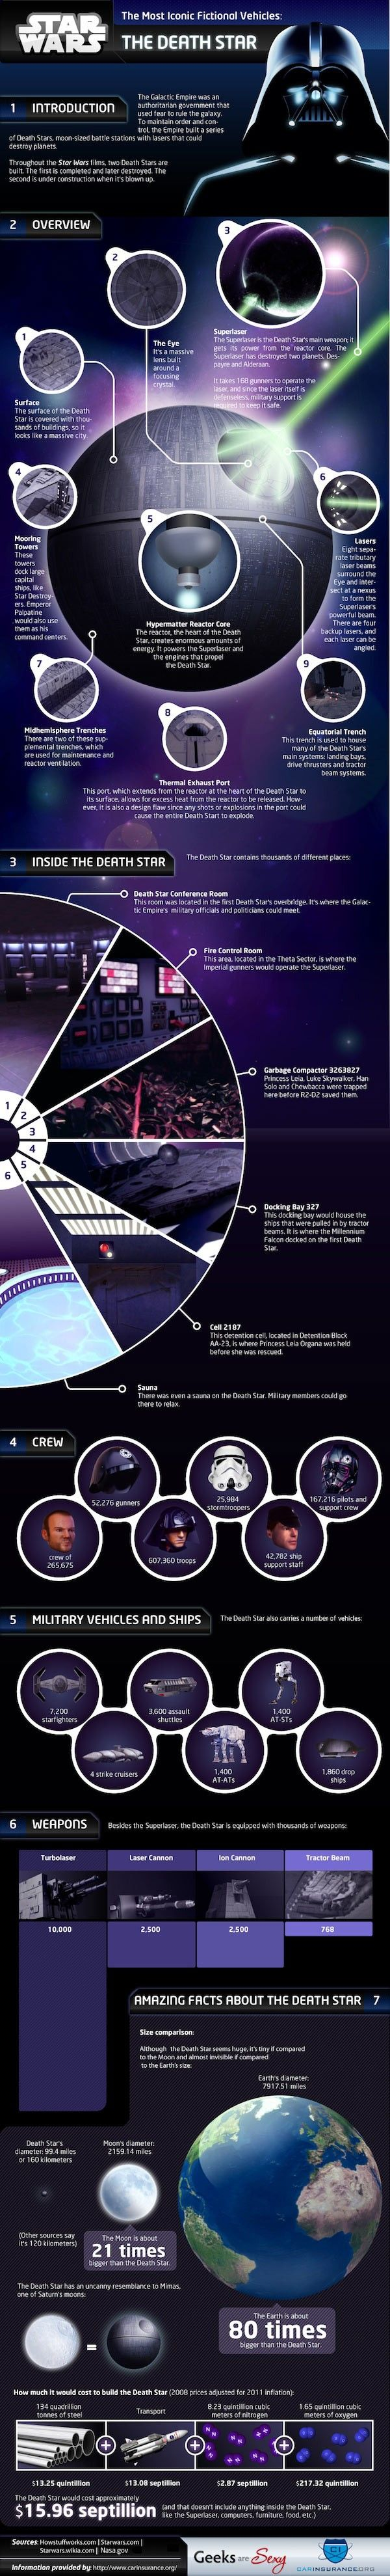 I realize this has absolutely nothing to do with journalism, but I appreciate the fact that this is a great-looking infographic, and would be a great example to show in class. #StarWars